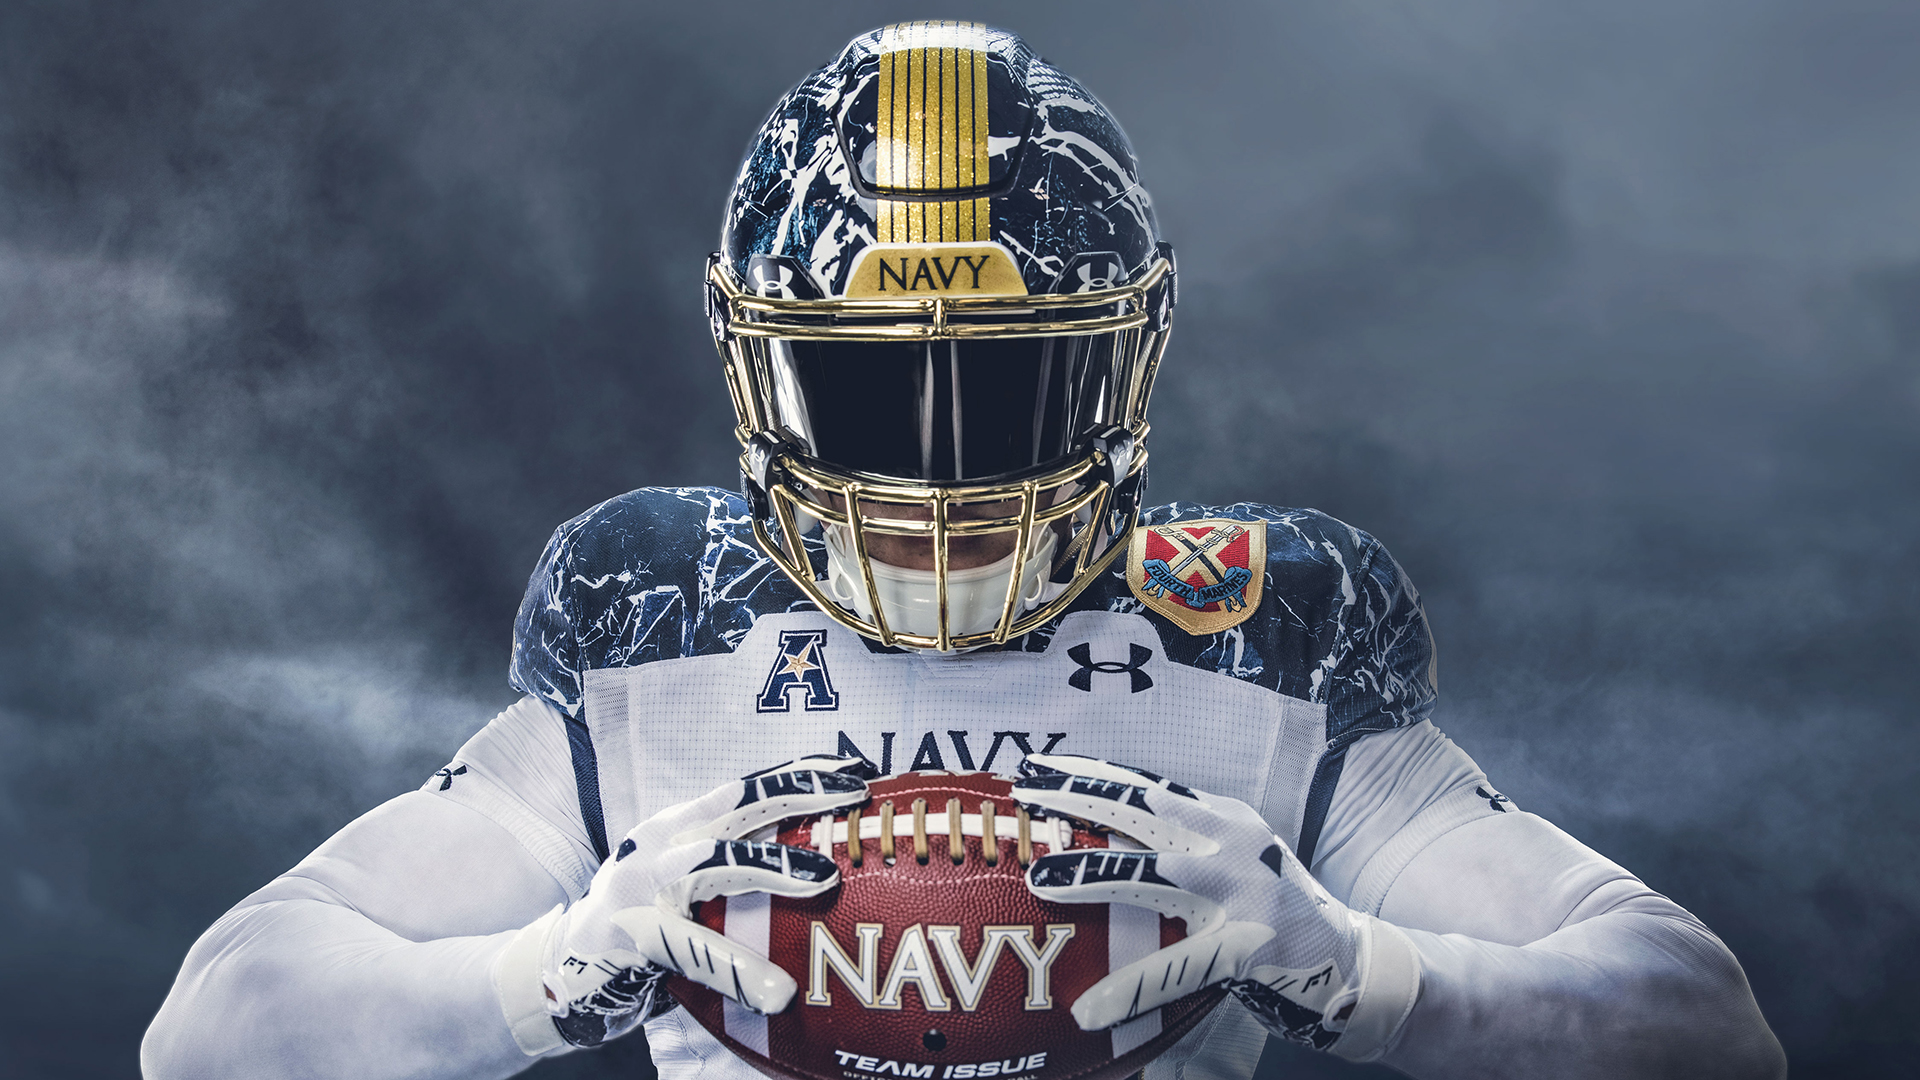 Navy And Under Armour Unveil The 2020 Army Navy Uniform That Celebrates 175 Years Of The United States Naval Academy Naval Academy Athletics